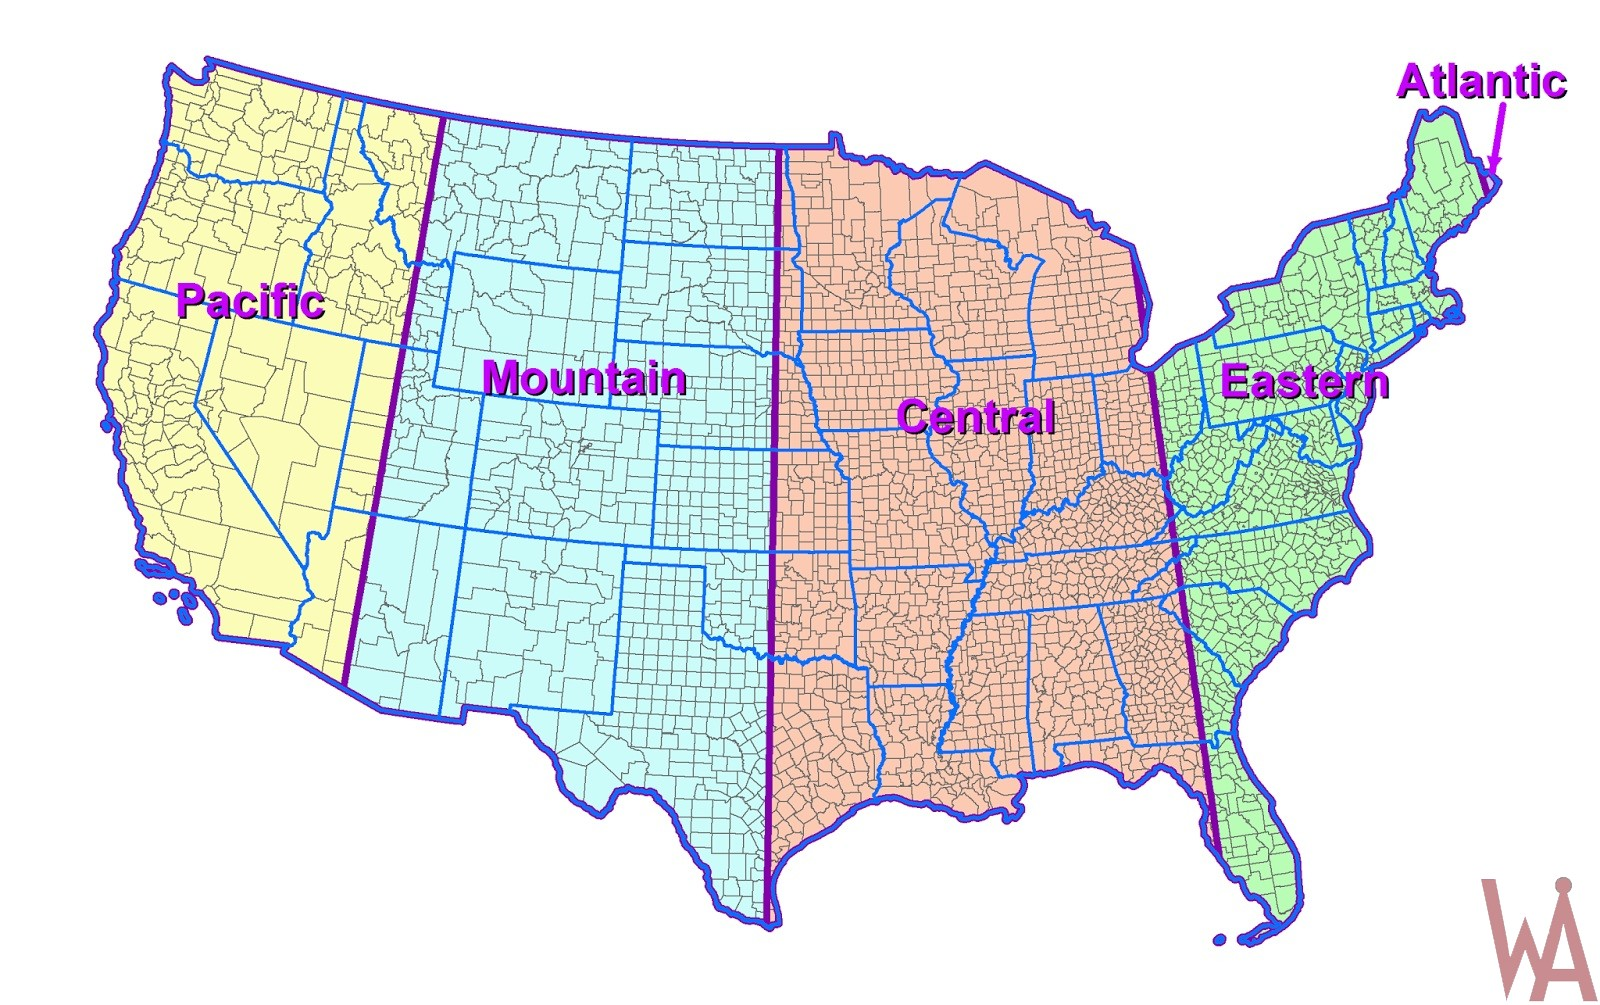 Colorful time zone Map of USA | WhatsAnswer on zone map canada, secrets of usa, information of usa, flowers of usa, zone map of cambodia, zone map of africa, zone map of hong kong, directors of usa, hardiness zones of usa, zone map of maine, zone map of nepal, climate zones map usa, plants of usa, zone chart of usa,